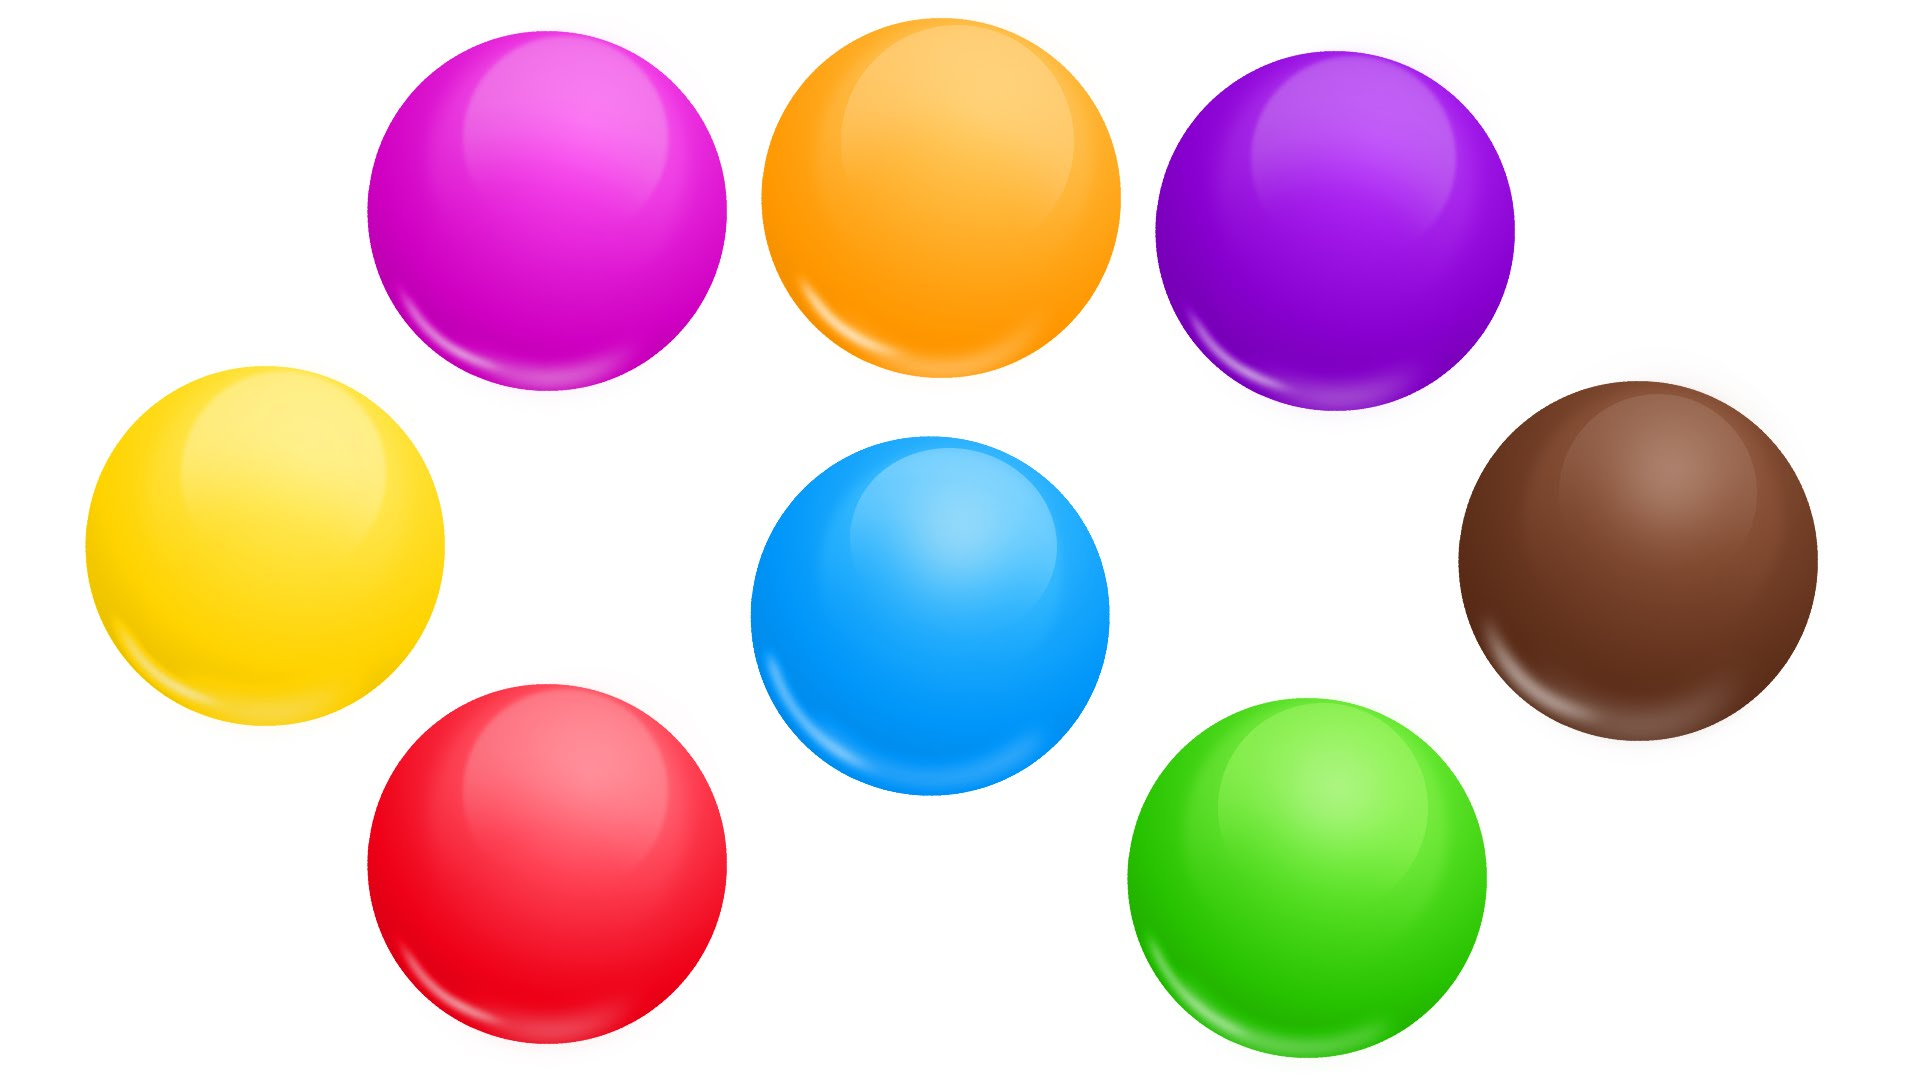 Balls clipart colored. Best learning video for